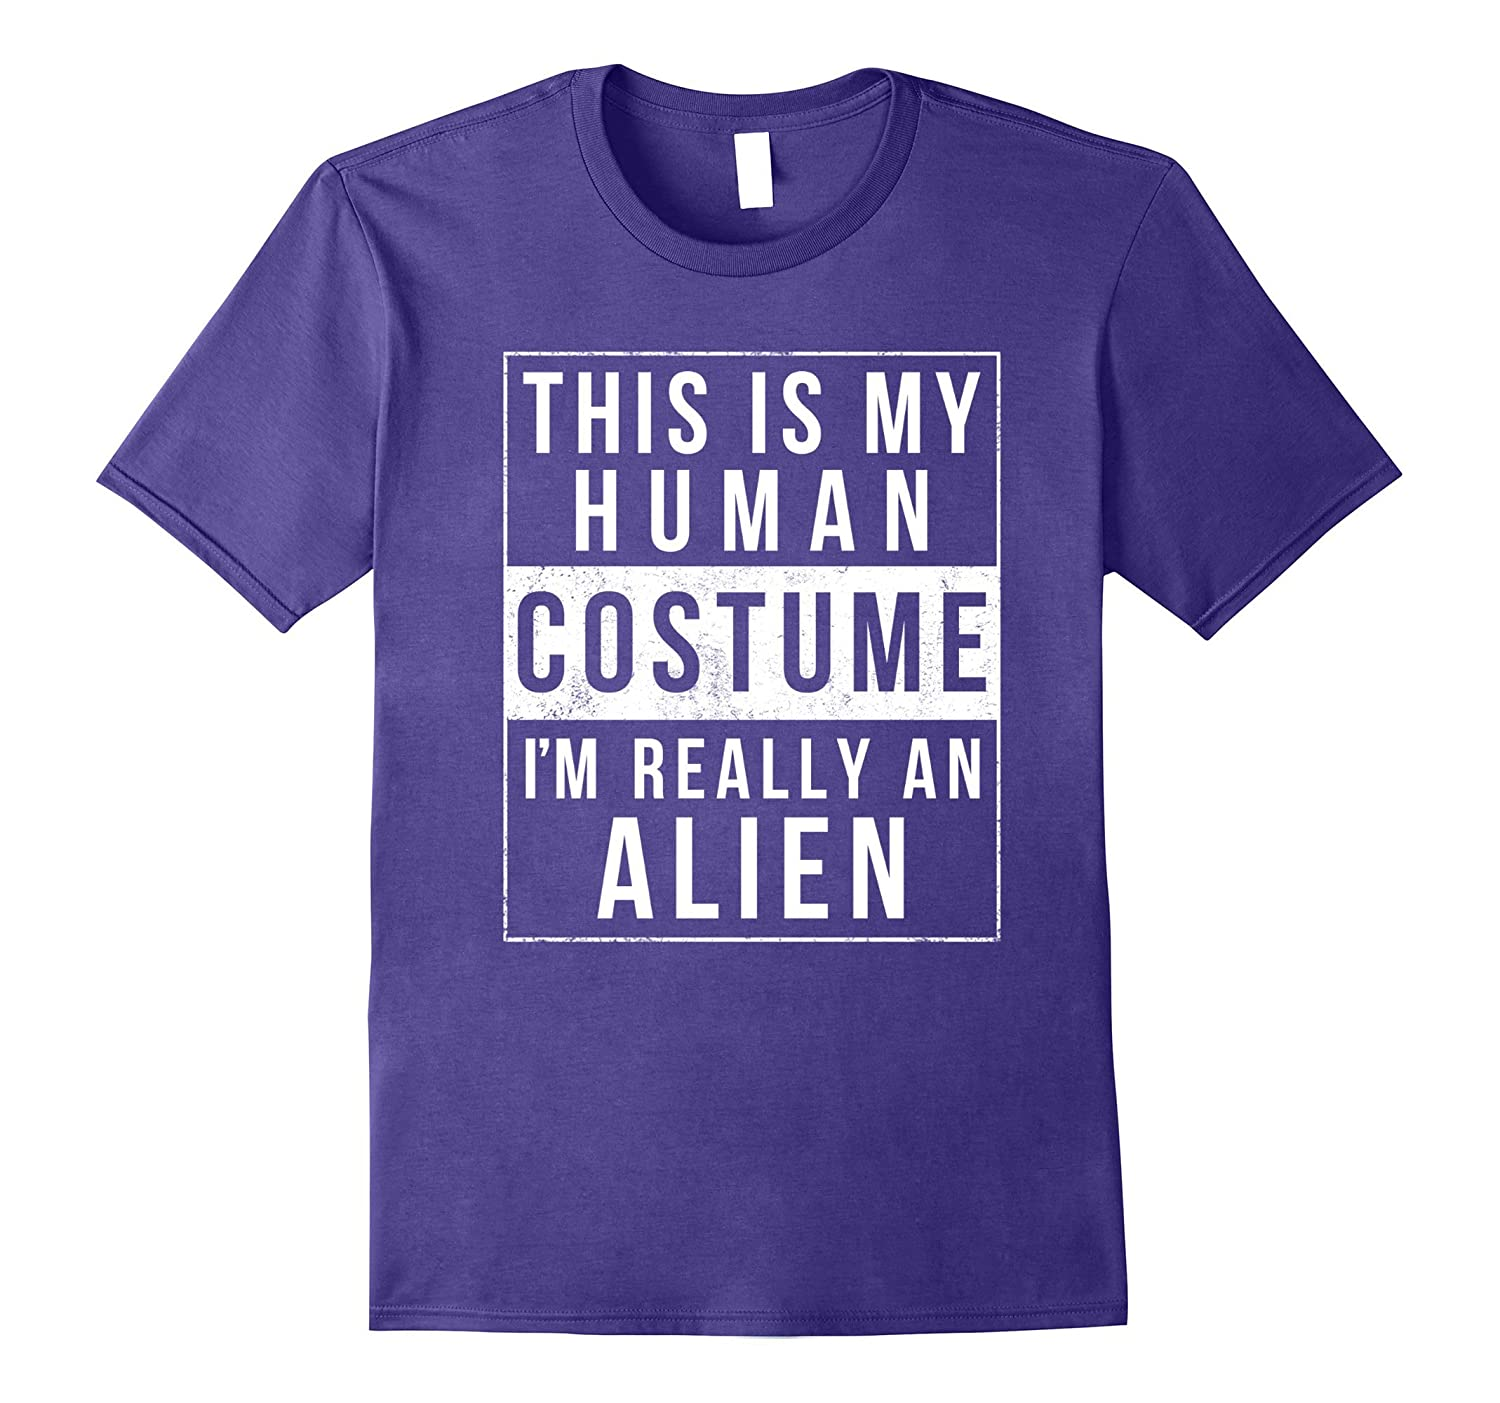 Alien Halloween Costume Shirt Funny Easy for Kids Adults-T-Shirt